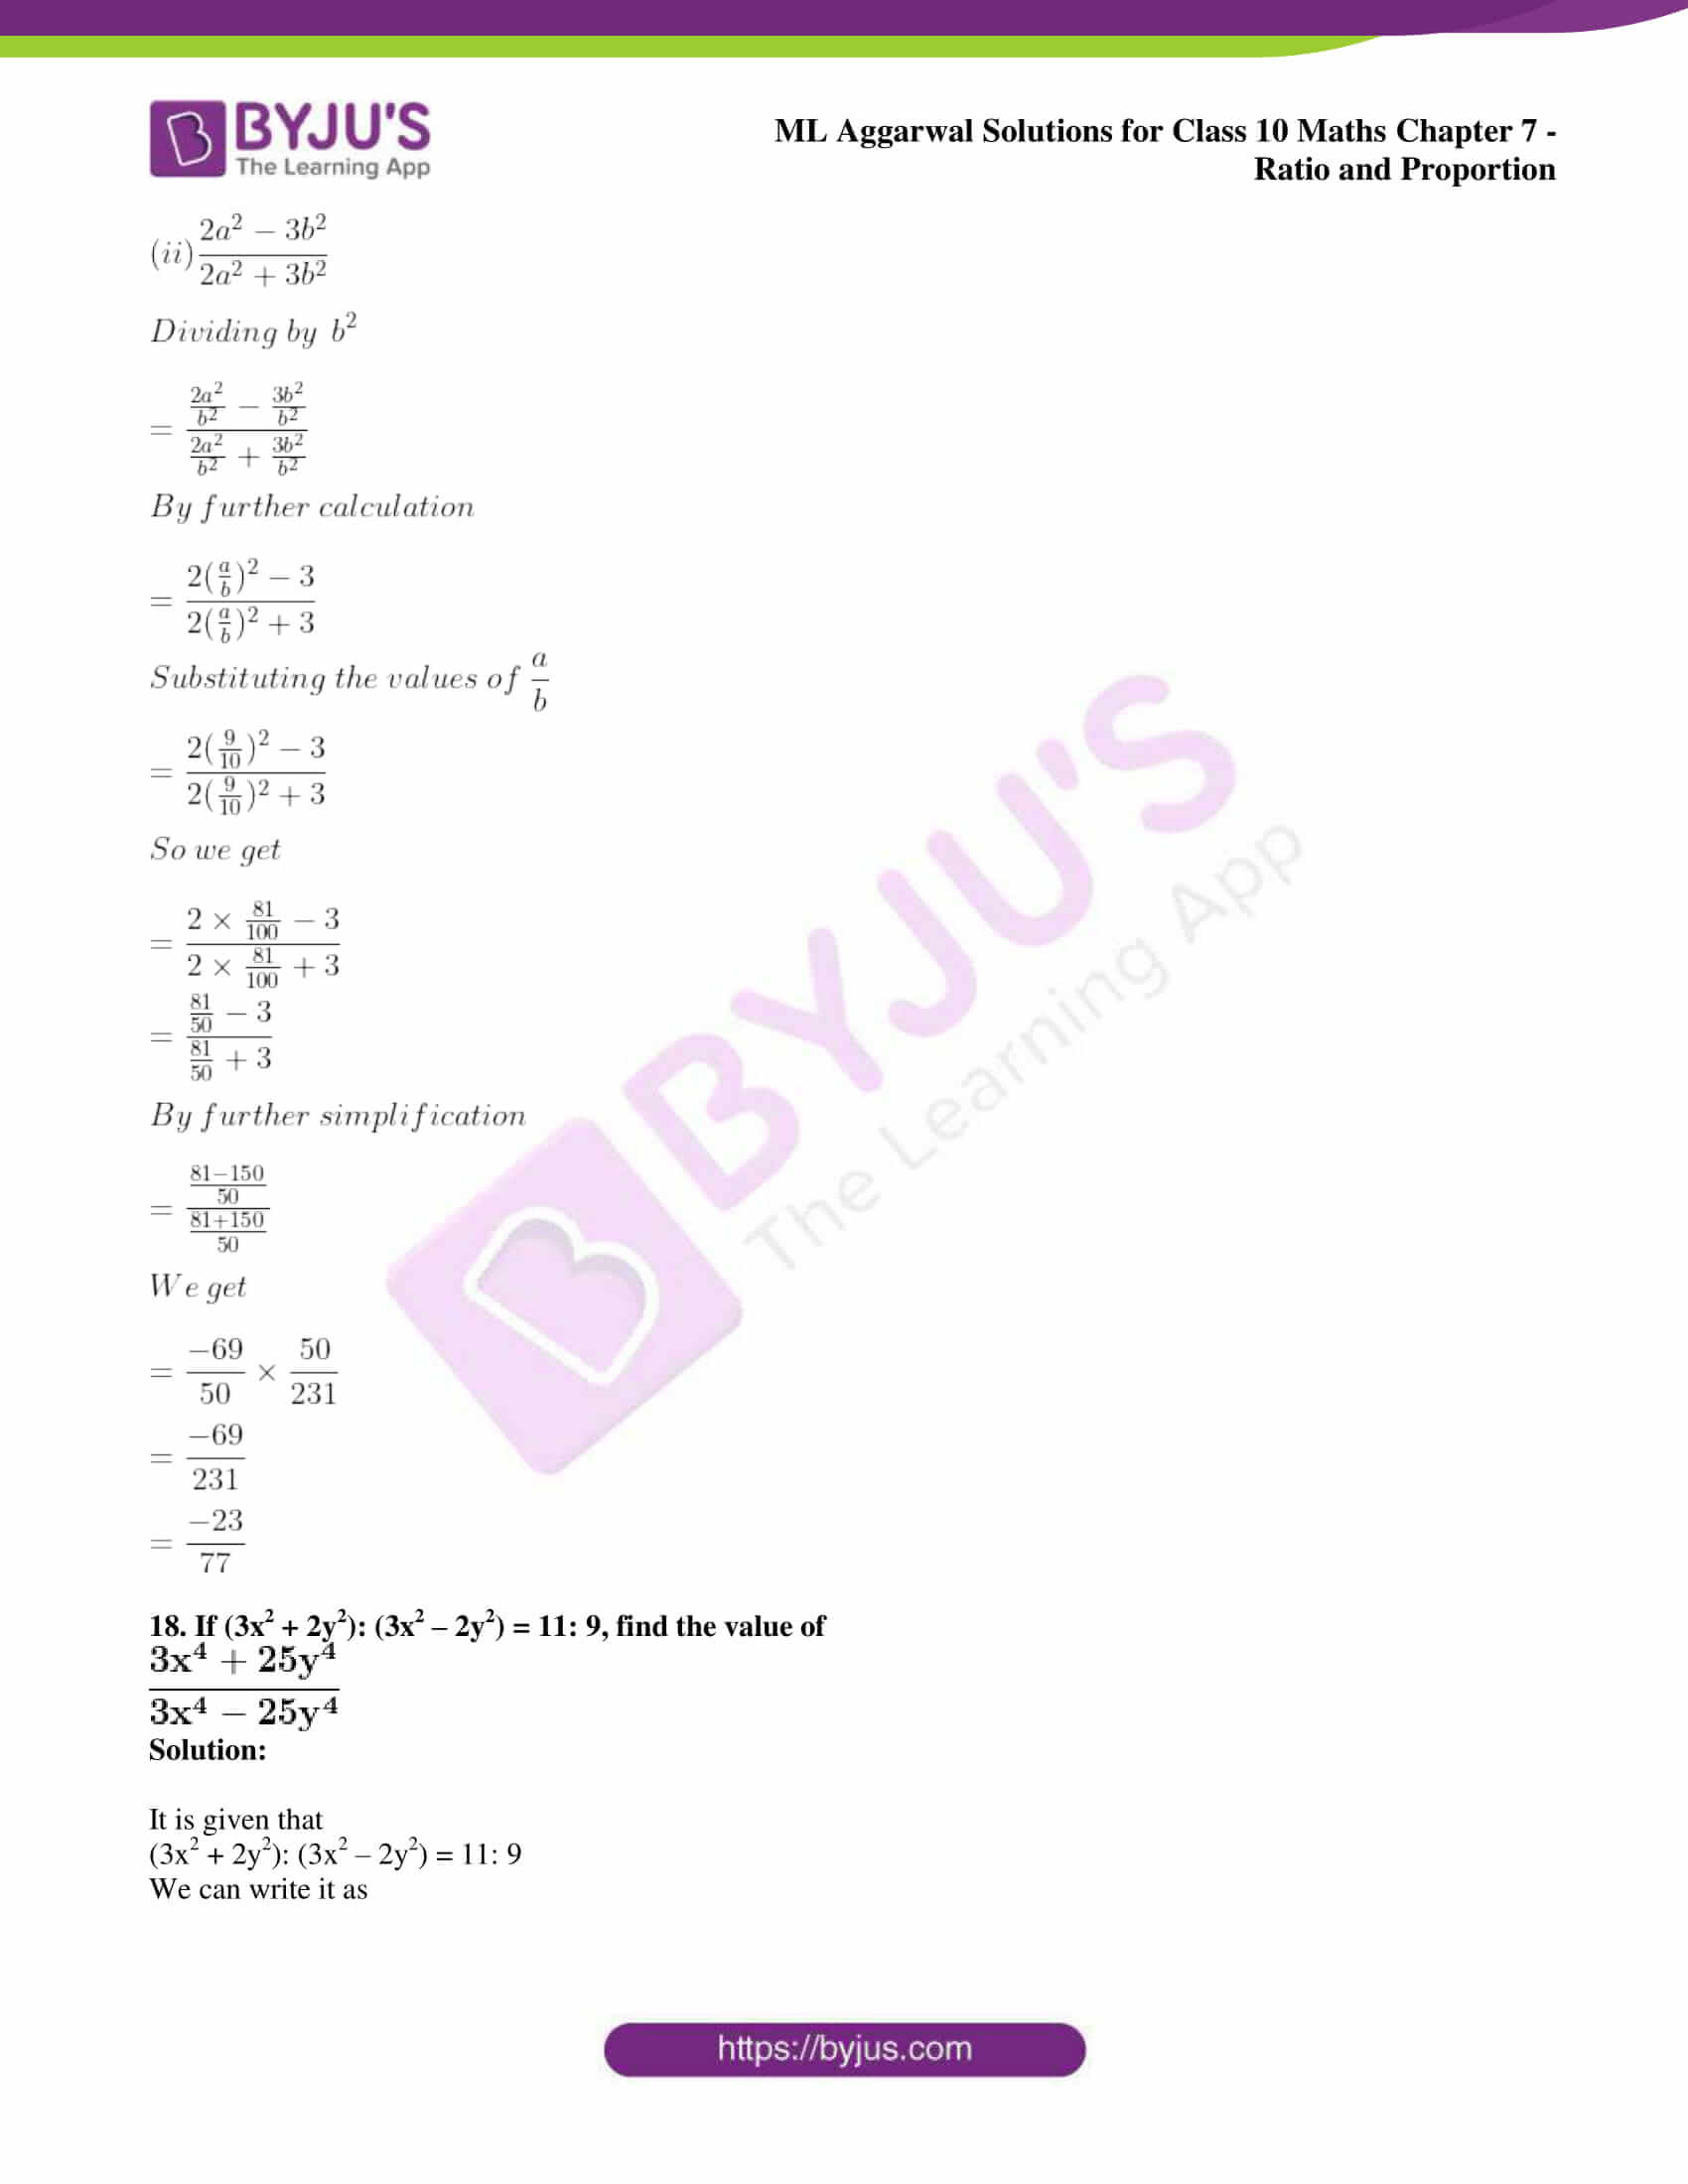 ml aggarwal solutions for class 10 maths chapter 7 80